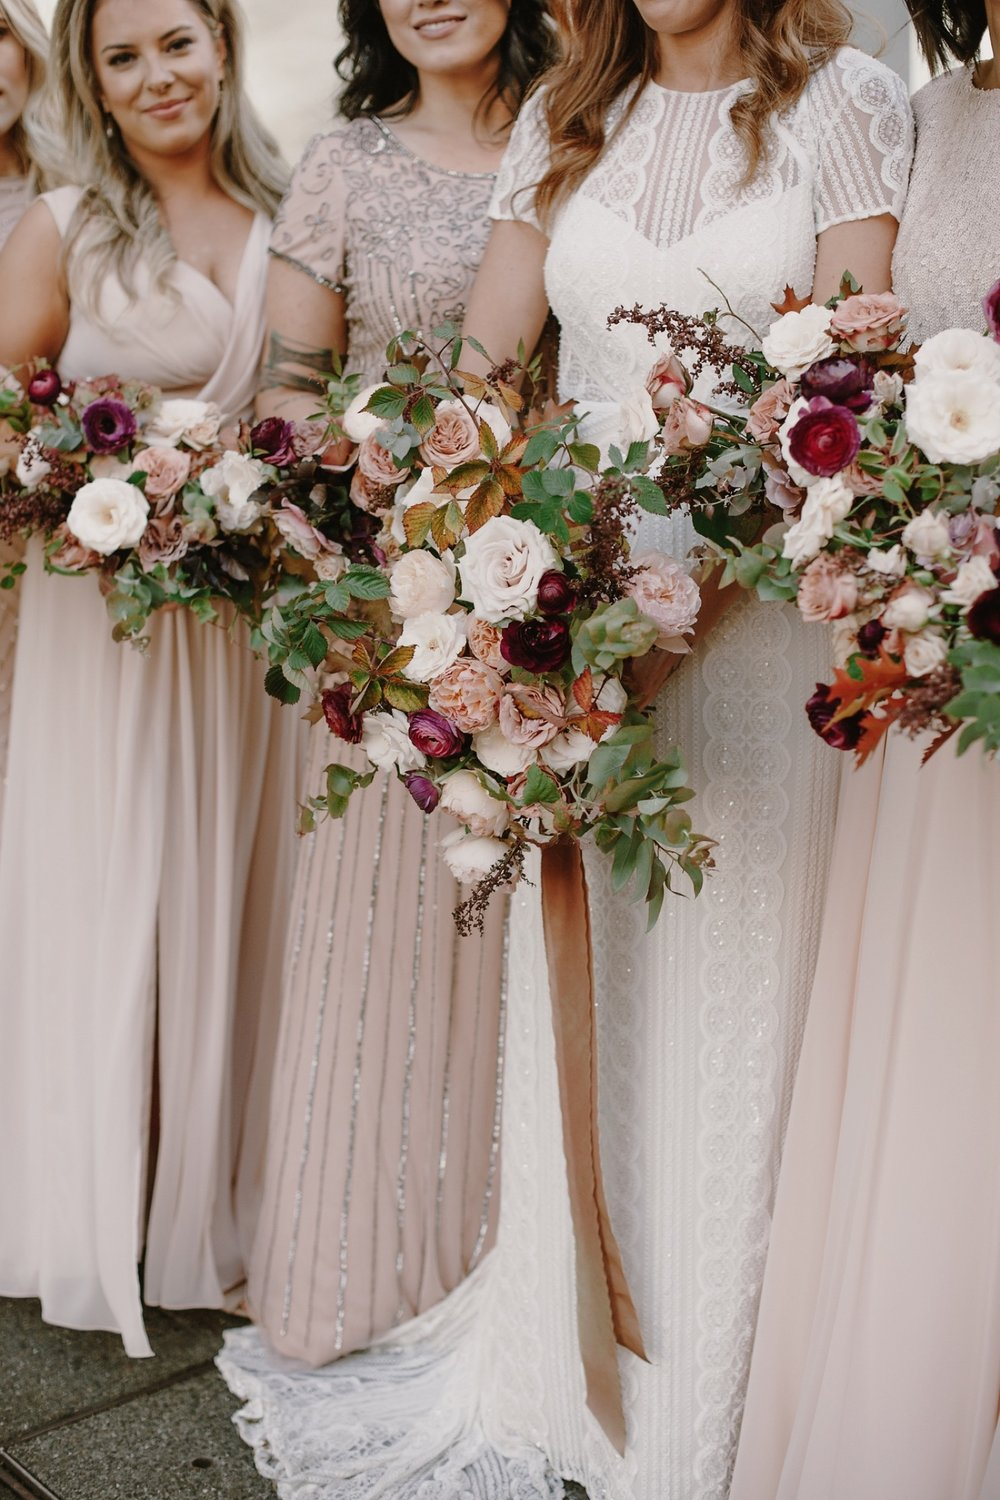 Downtown_Seattle_Wedding_Foundry_Sinclair_Moore047.JPG